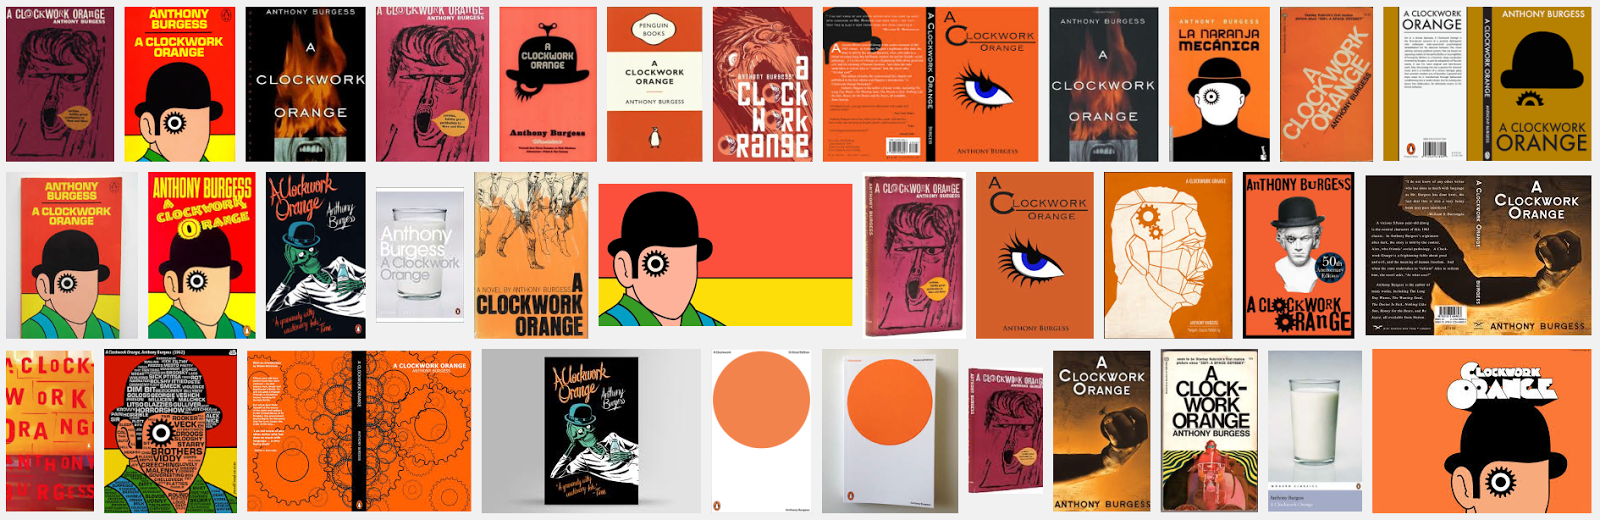 all year work design practice a clockwork orange book cover a clockwork orange book cover redesign research into previous book covers